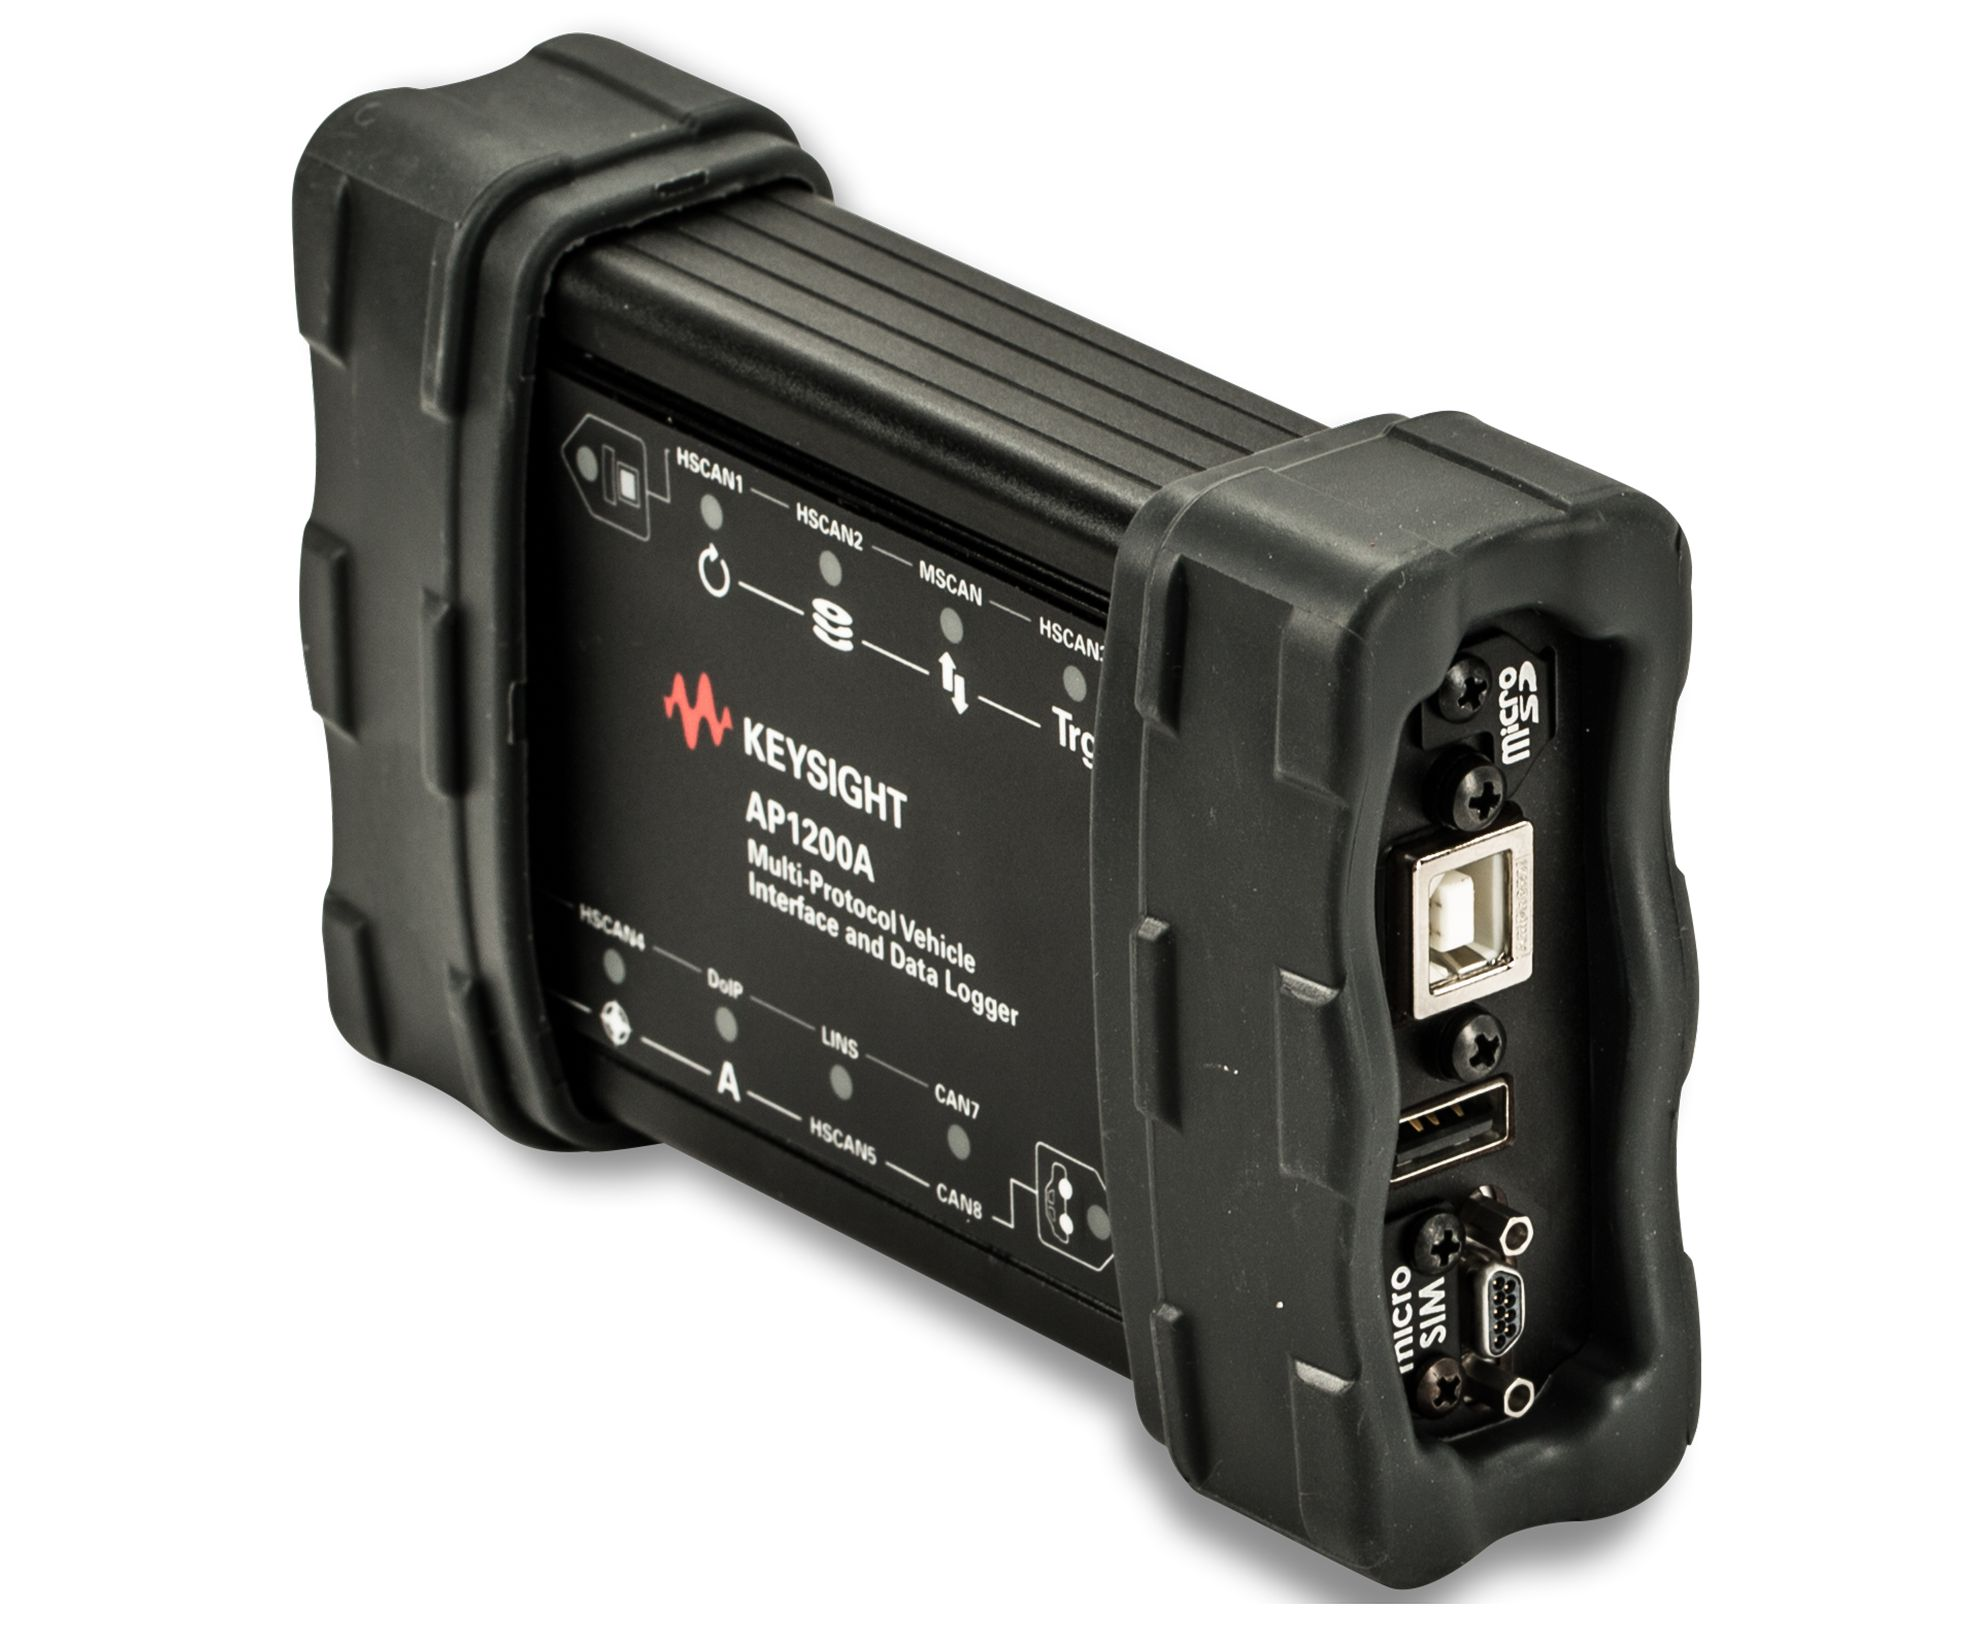 AP1200A Multiprotocol Vehicle Network Interface